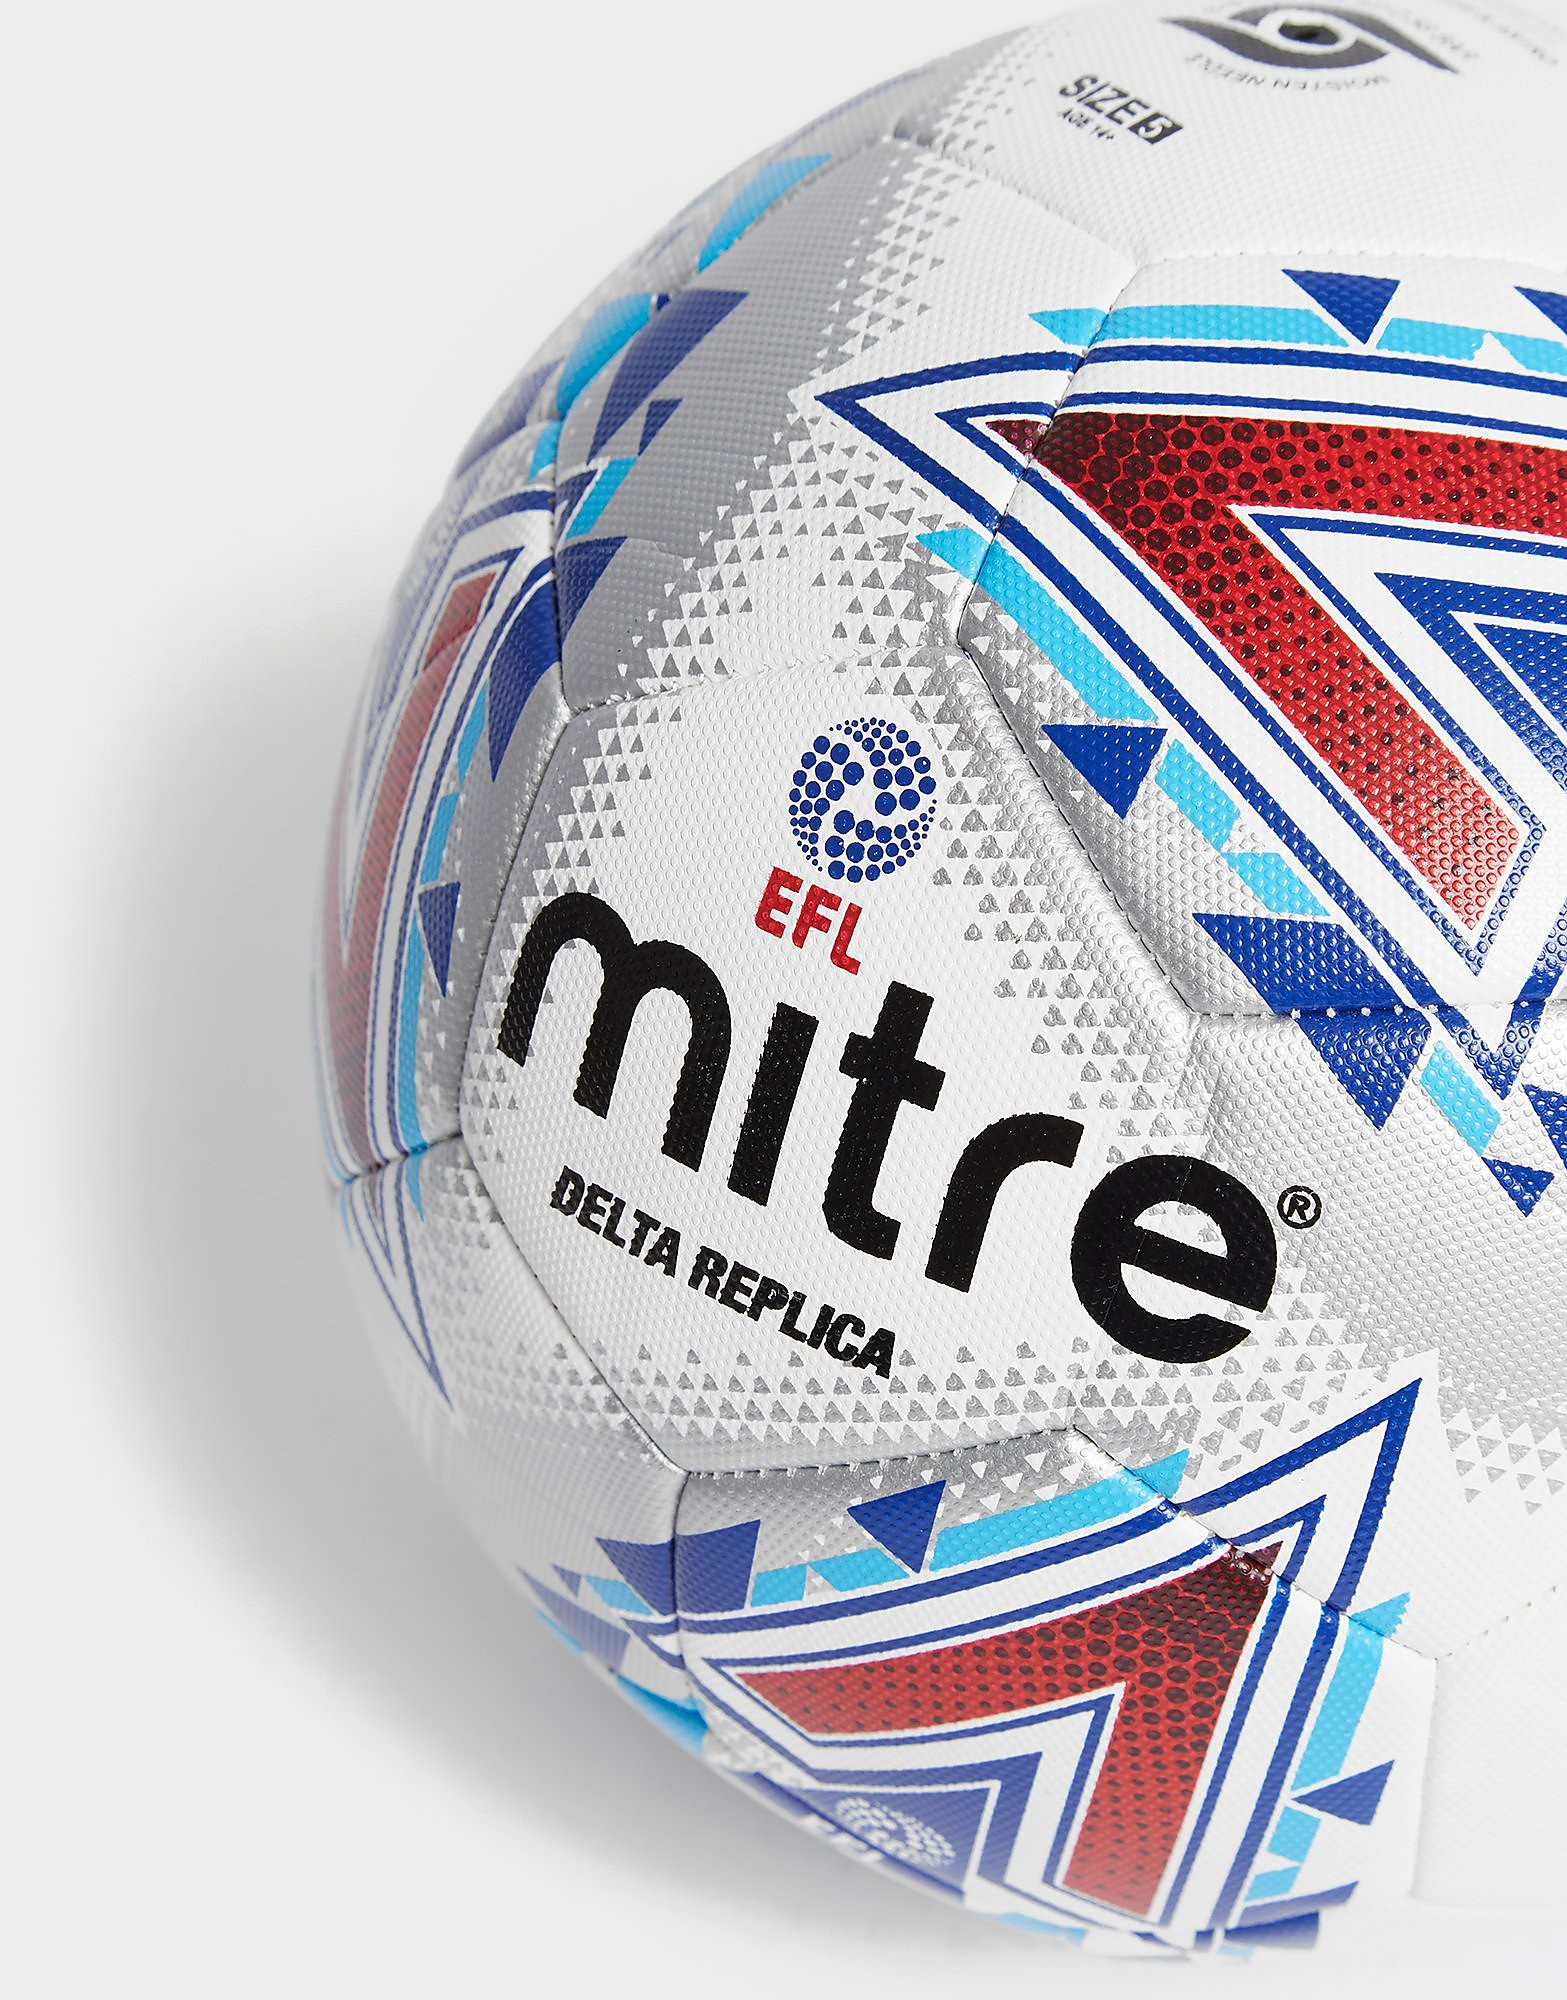 Mitre Delta Legends EFL Football